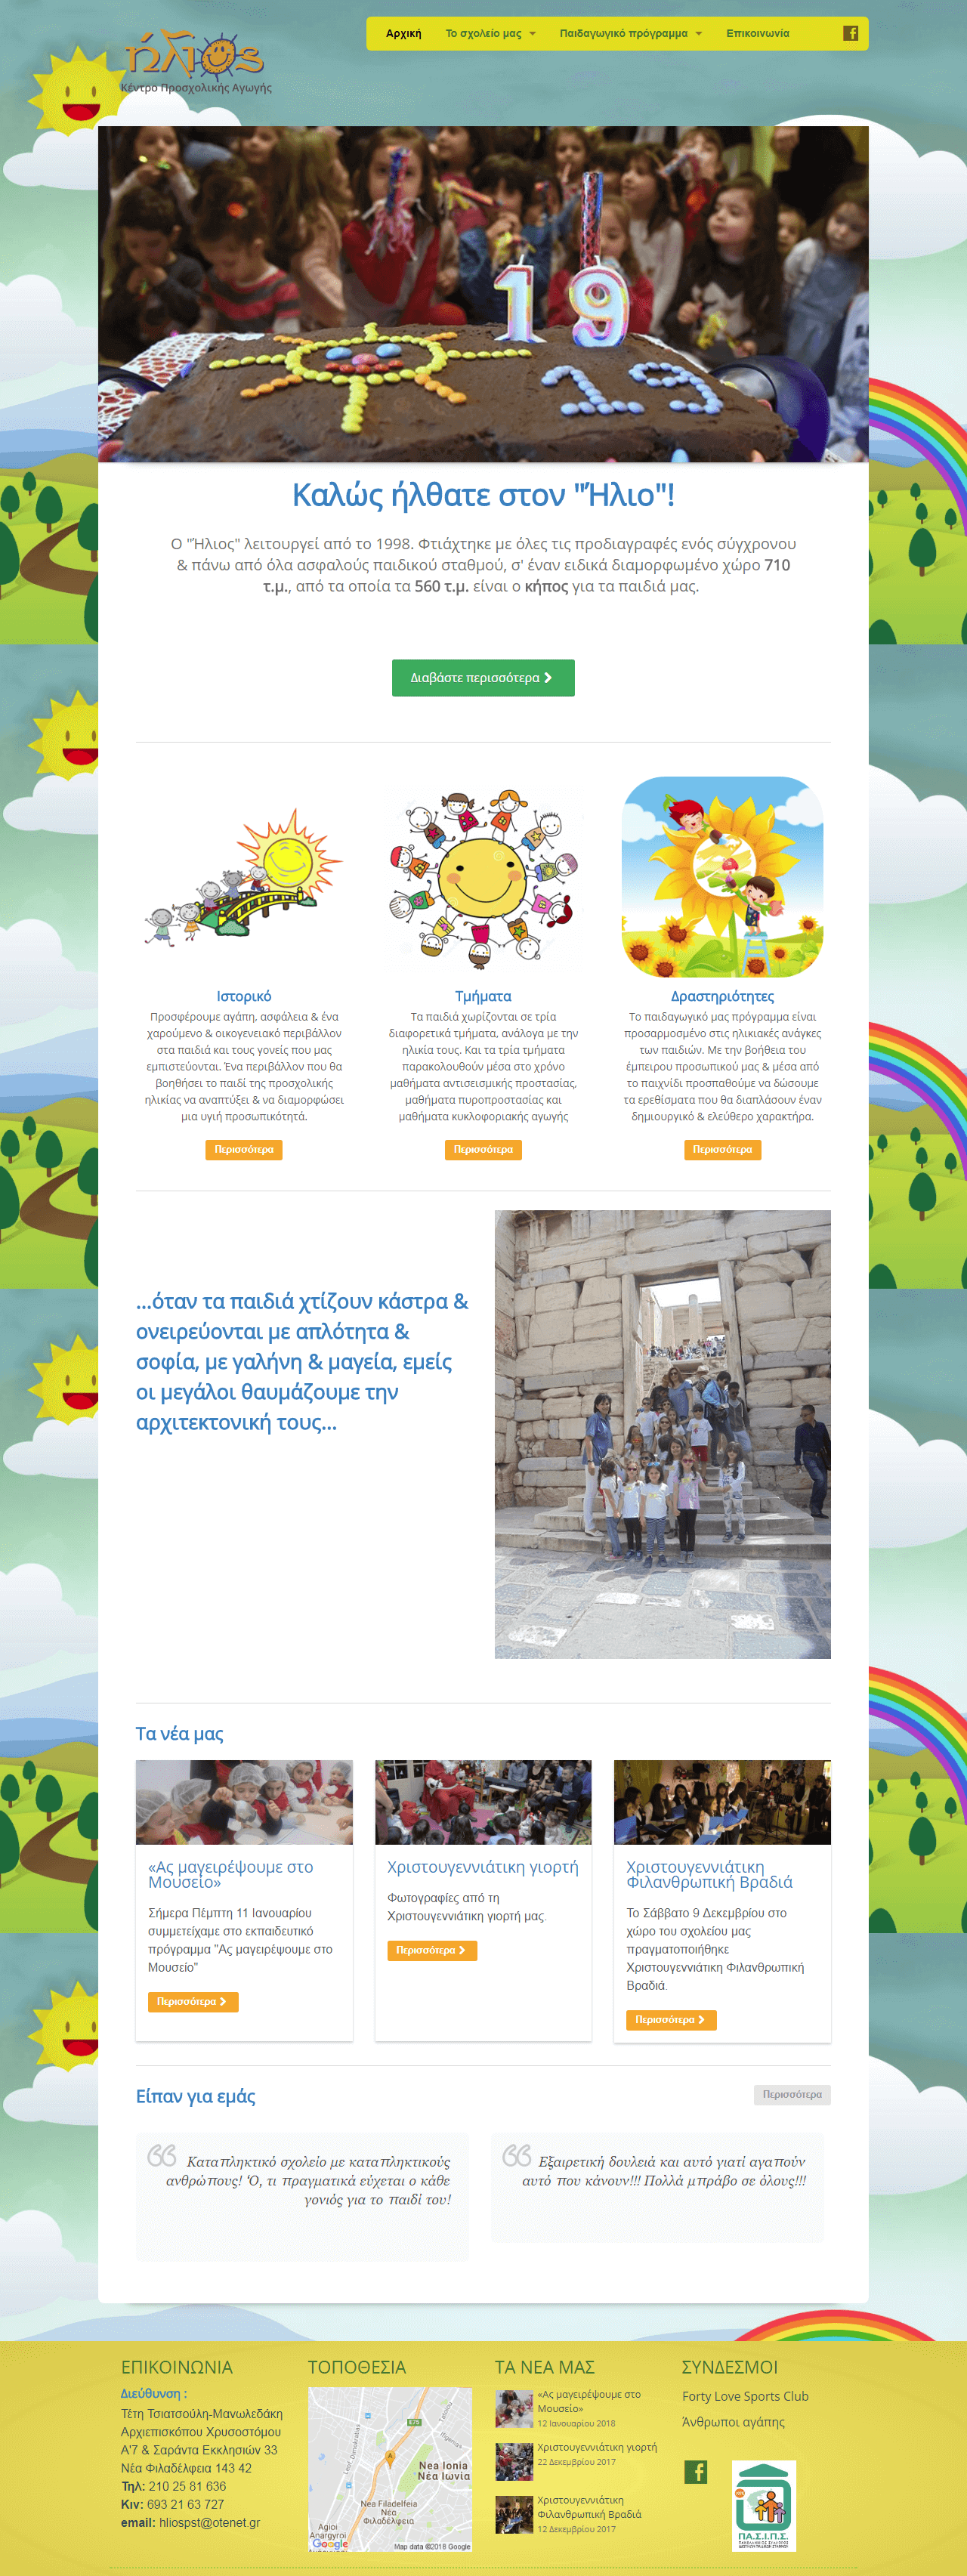 hlioskids_gr_website